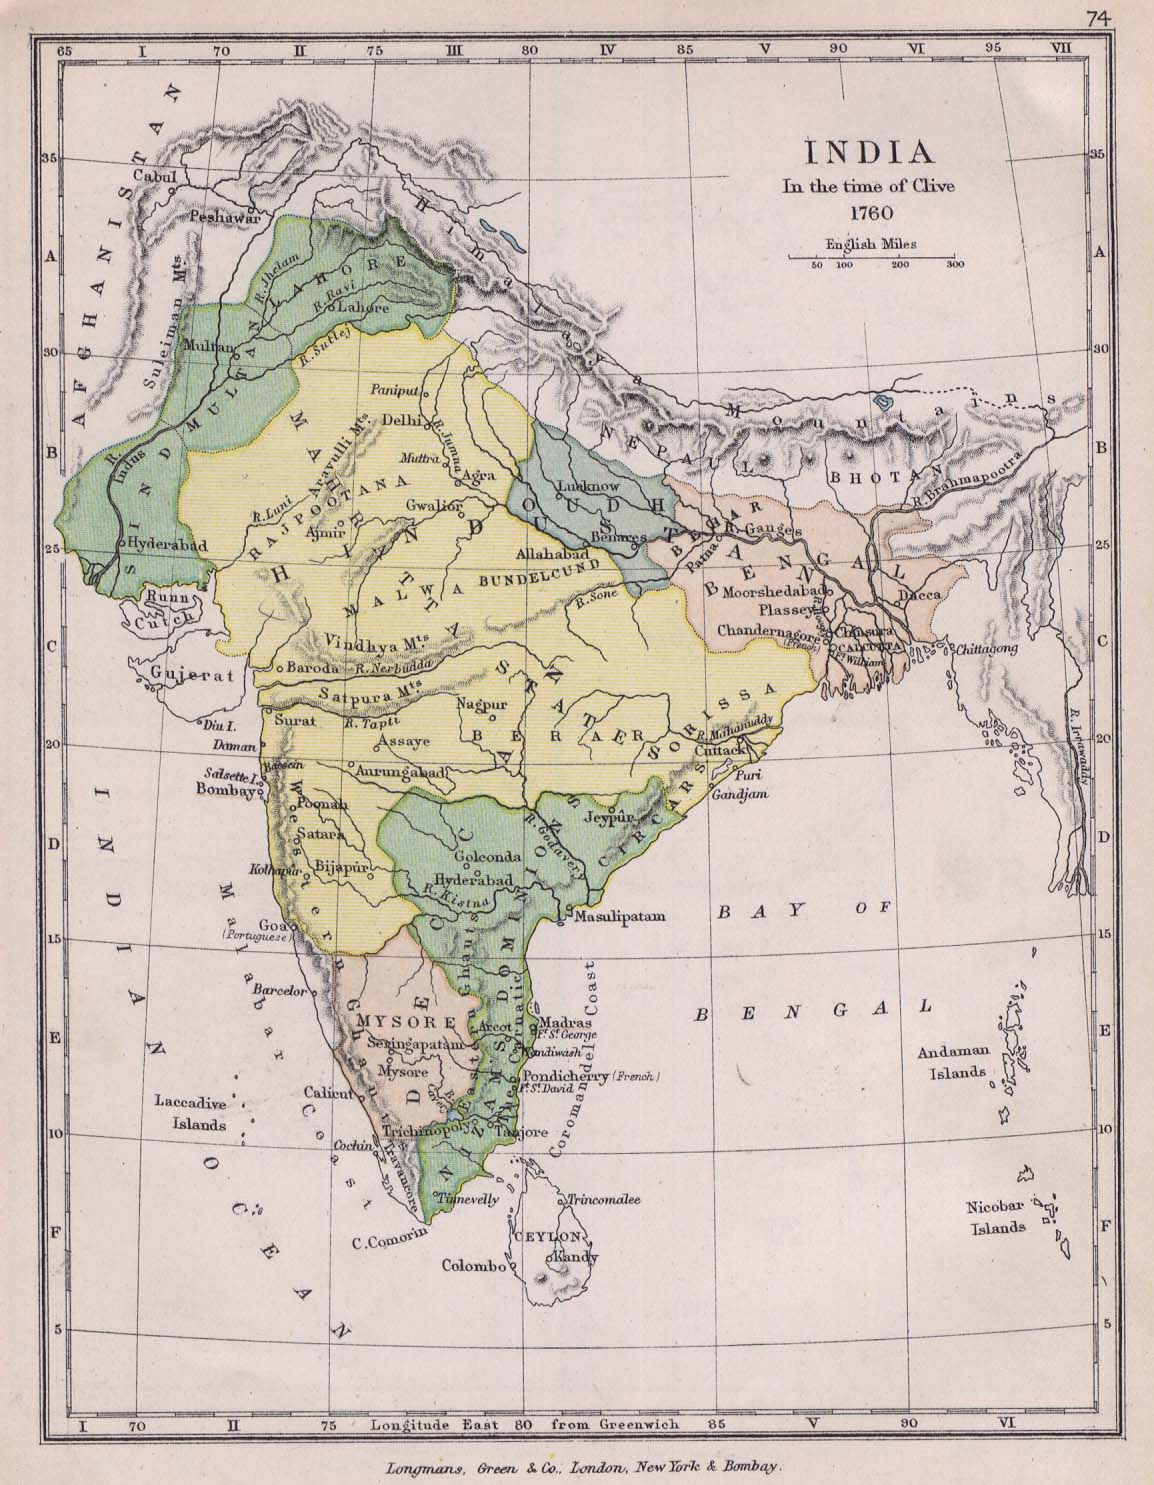 India 1760 from The Public Schools Historical Atlas edited by C. Colbeck. Longmans, Green, and Co. 1905